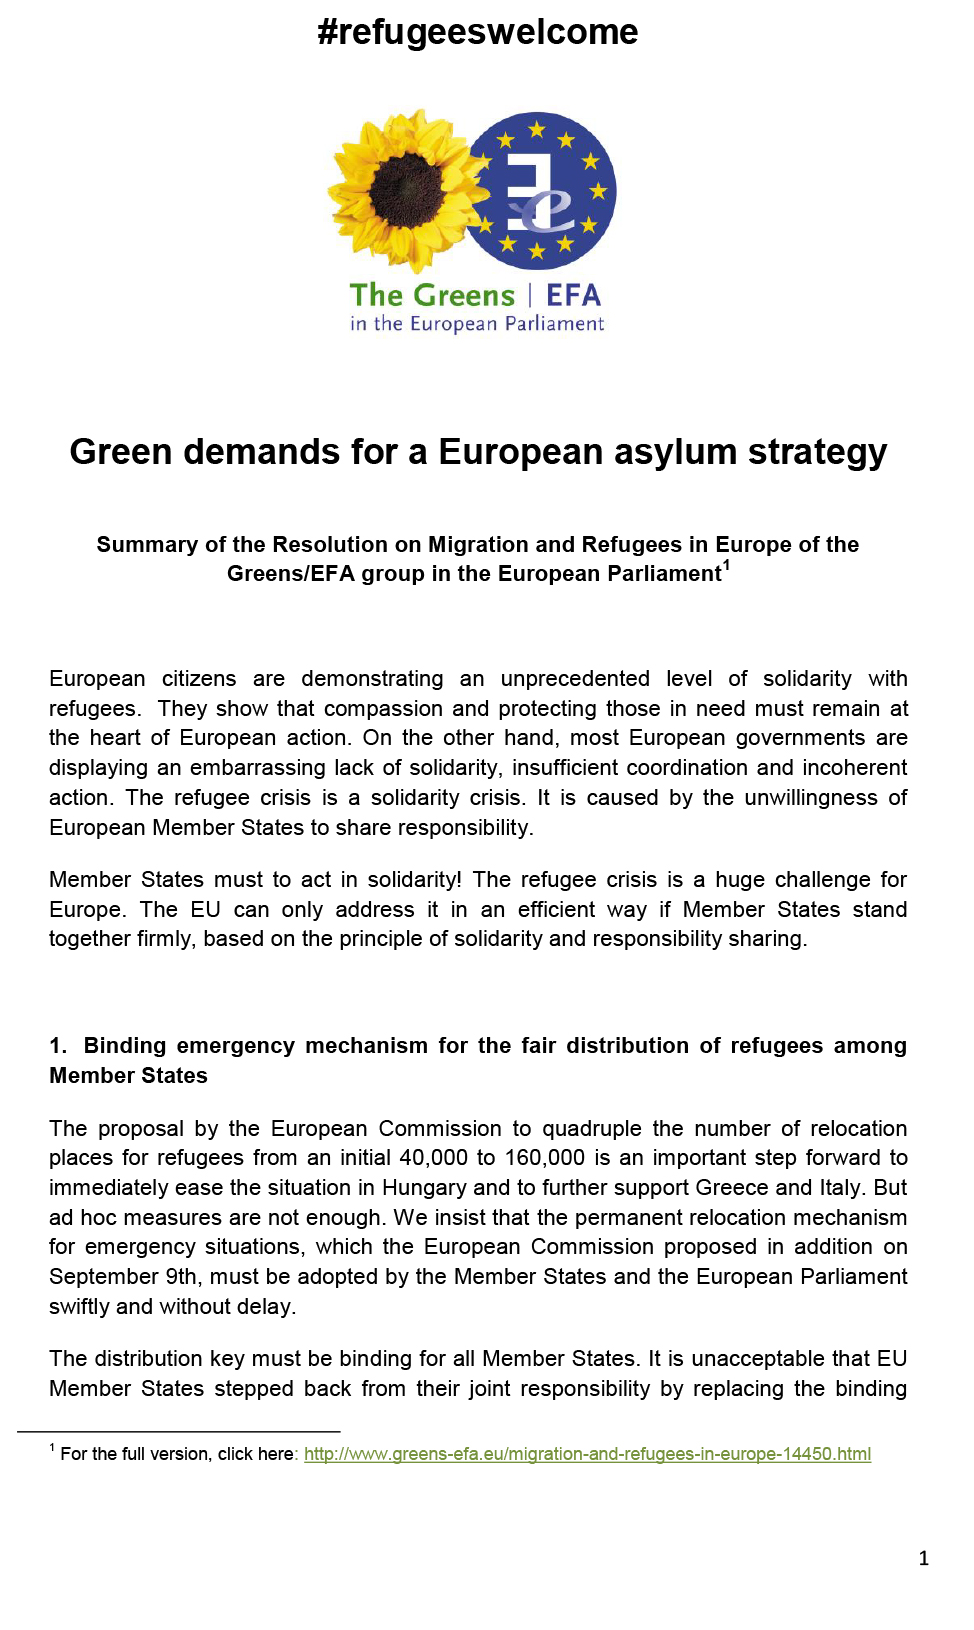 Green-demands-for-a-European-asylum-strategy-1